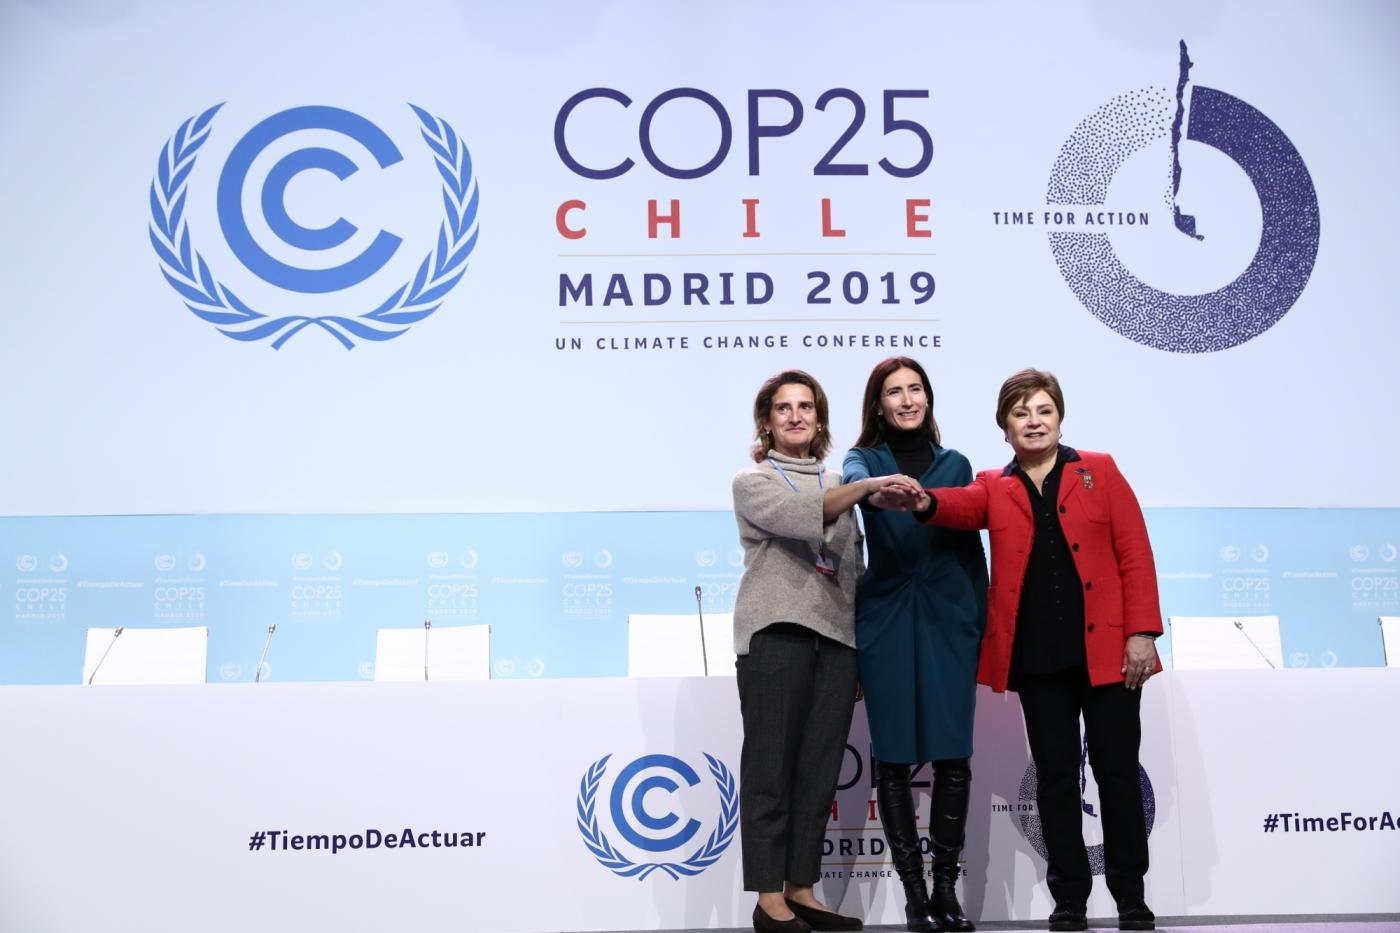 Madrid: UN Climate Change Executive Secretary Patricia Espinosa (R) attends the 25th Conference of the Parties to the United Nations Framework Convention on Climate Change (UNFCCC) or COP25 in Madrid. (Photo: IANS) by .